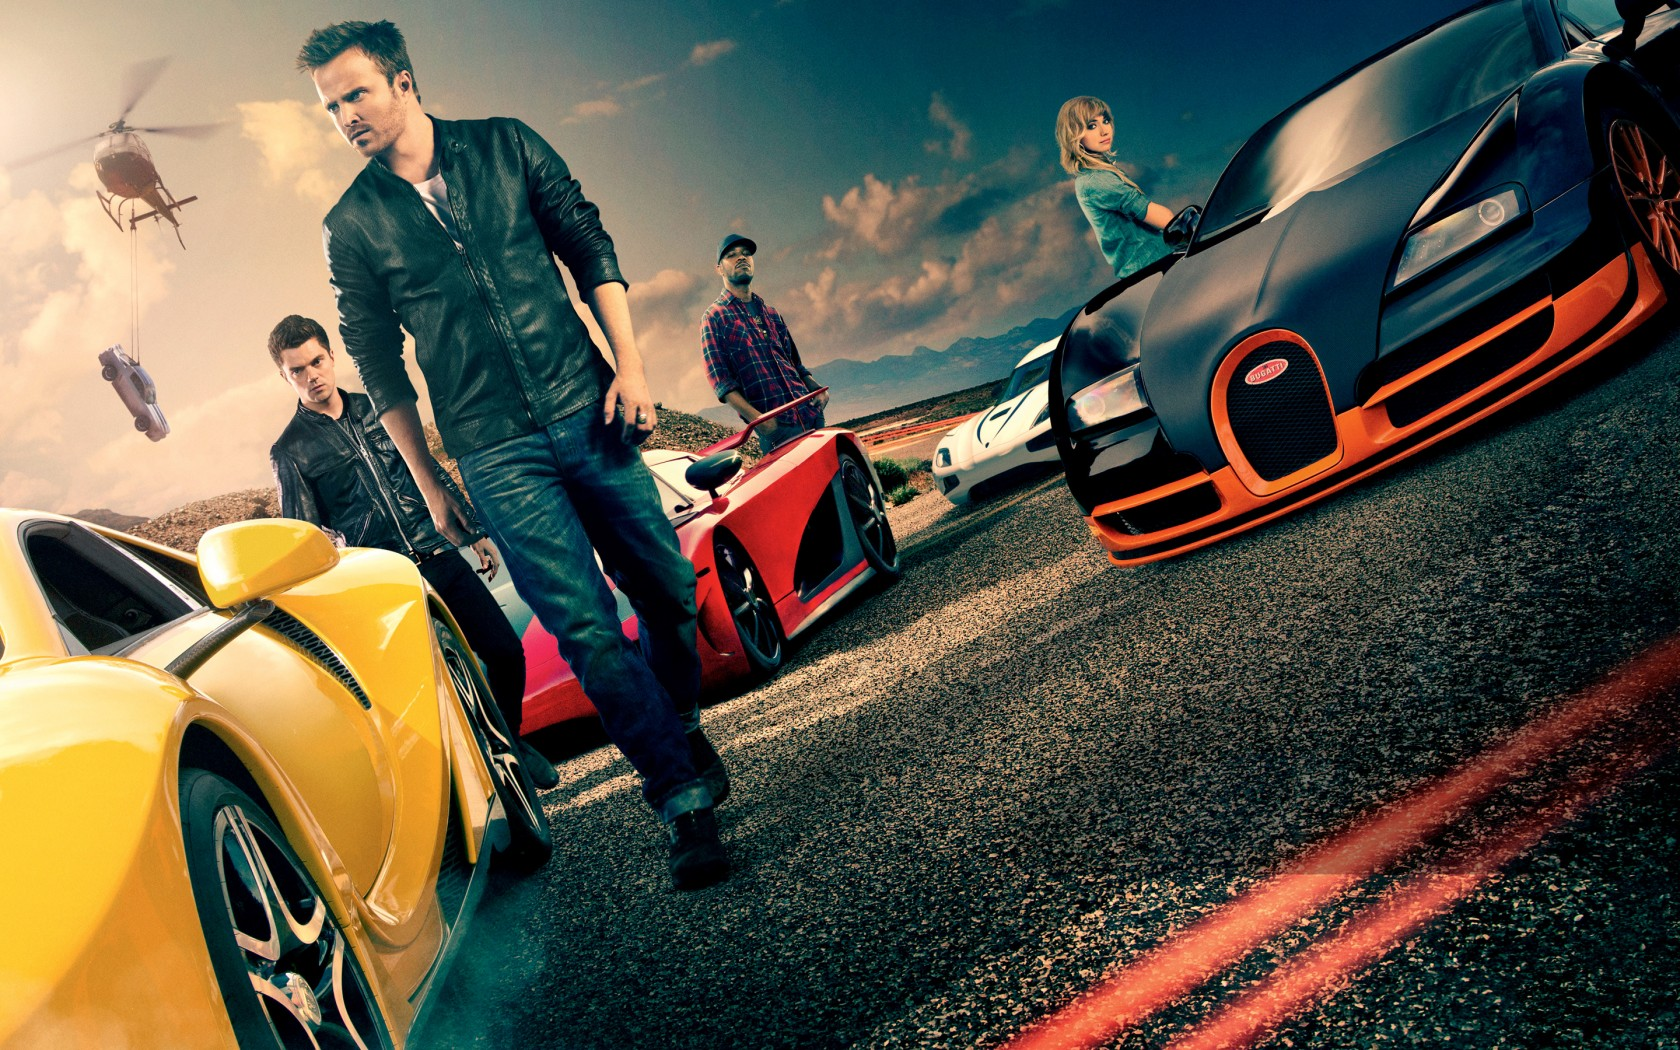 3d Wallpaper For Apple Ipad Need For Speed 2014 Movie Wallpapers Hd Wallpapers Id